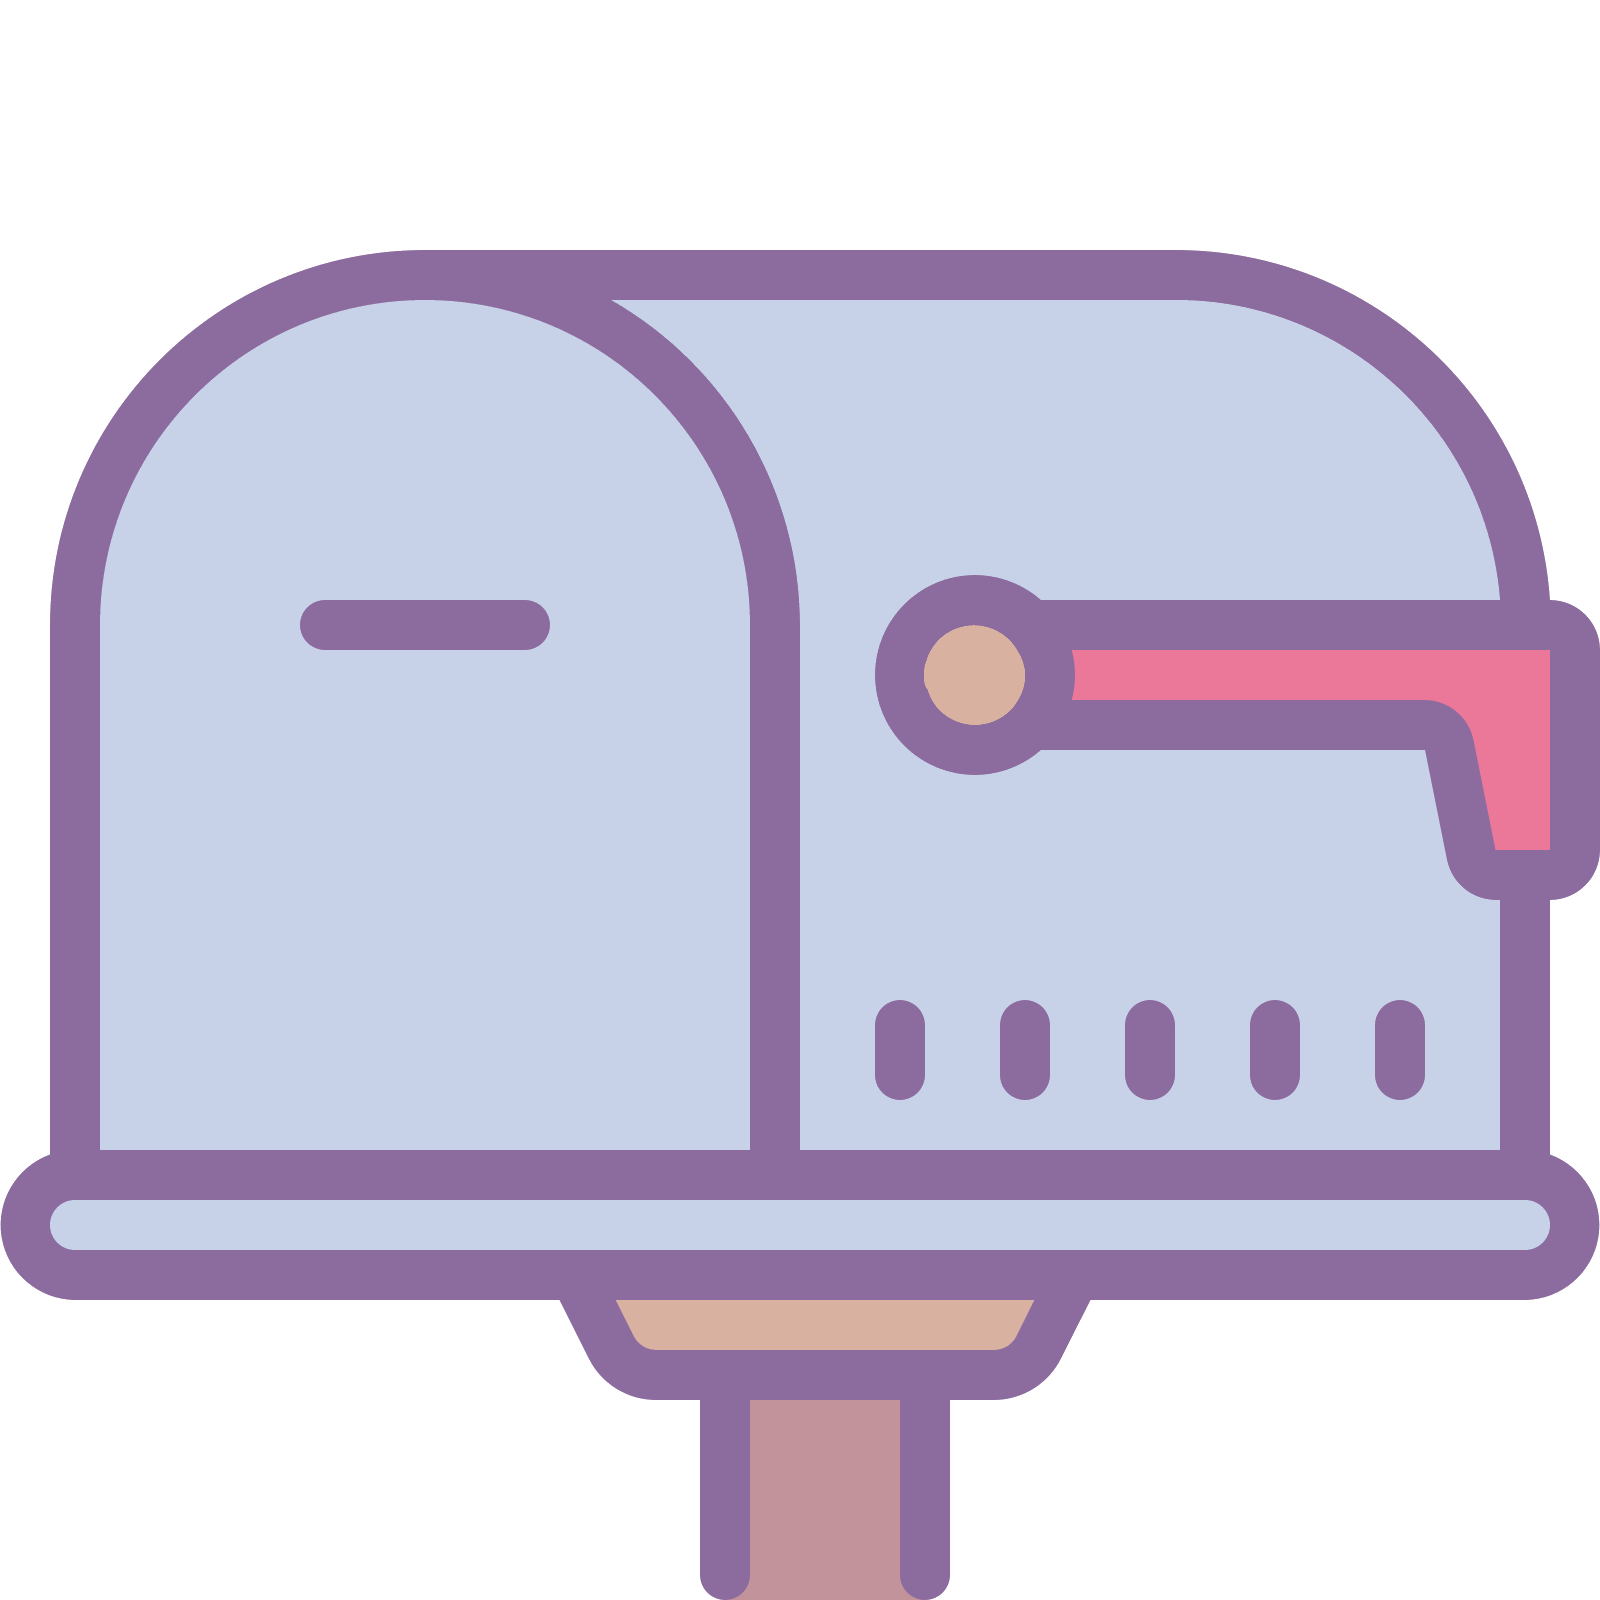 png icon this. Mailbox clipart mail truck